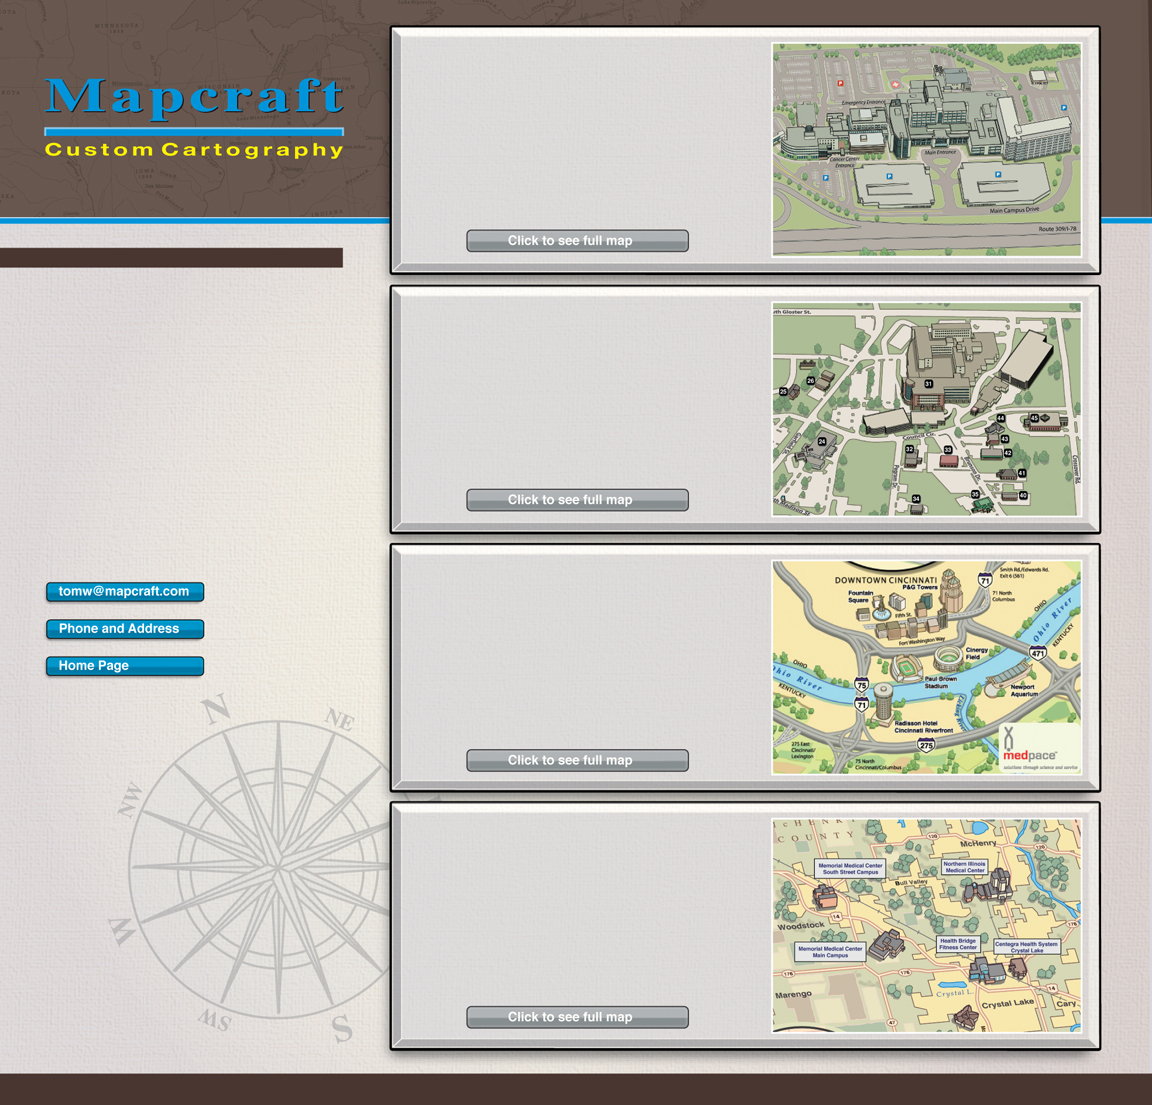 Mapcraft Custom Cartography Medical Campuses